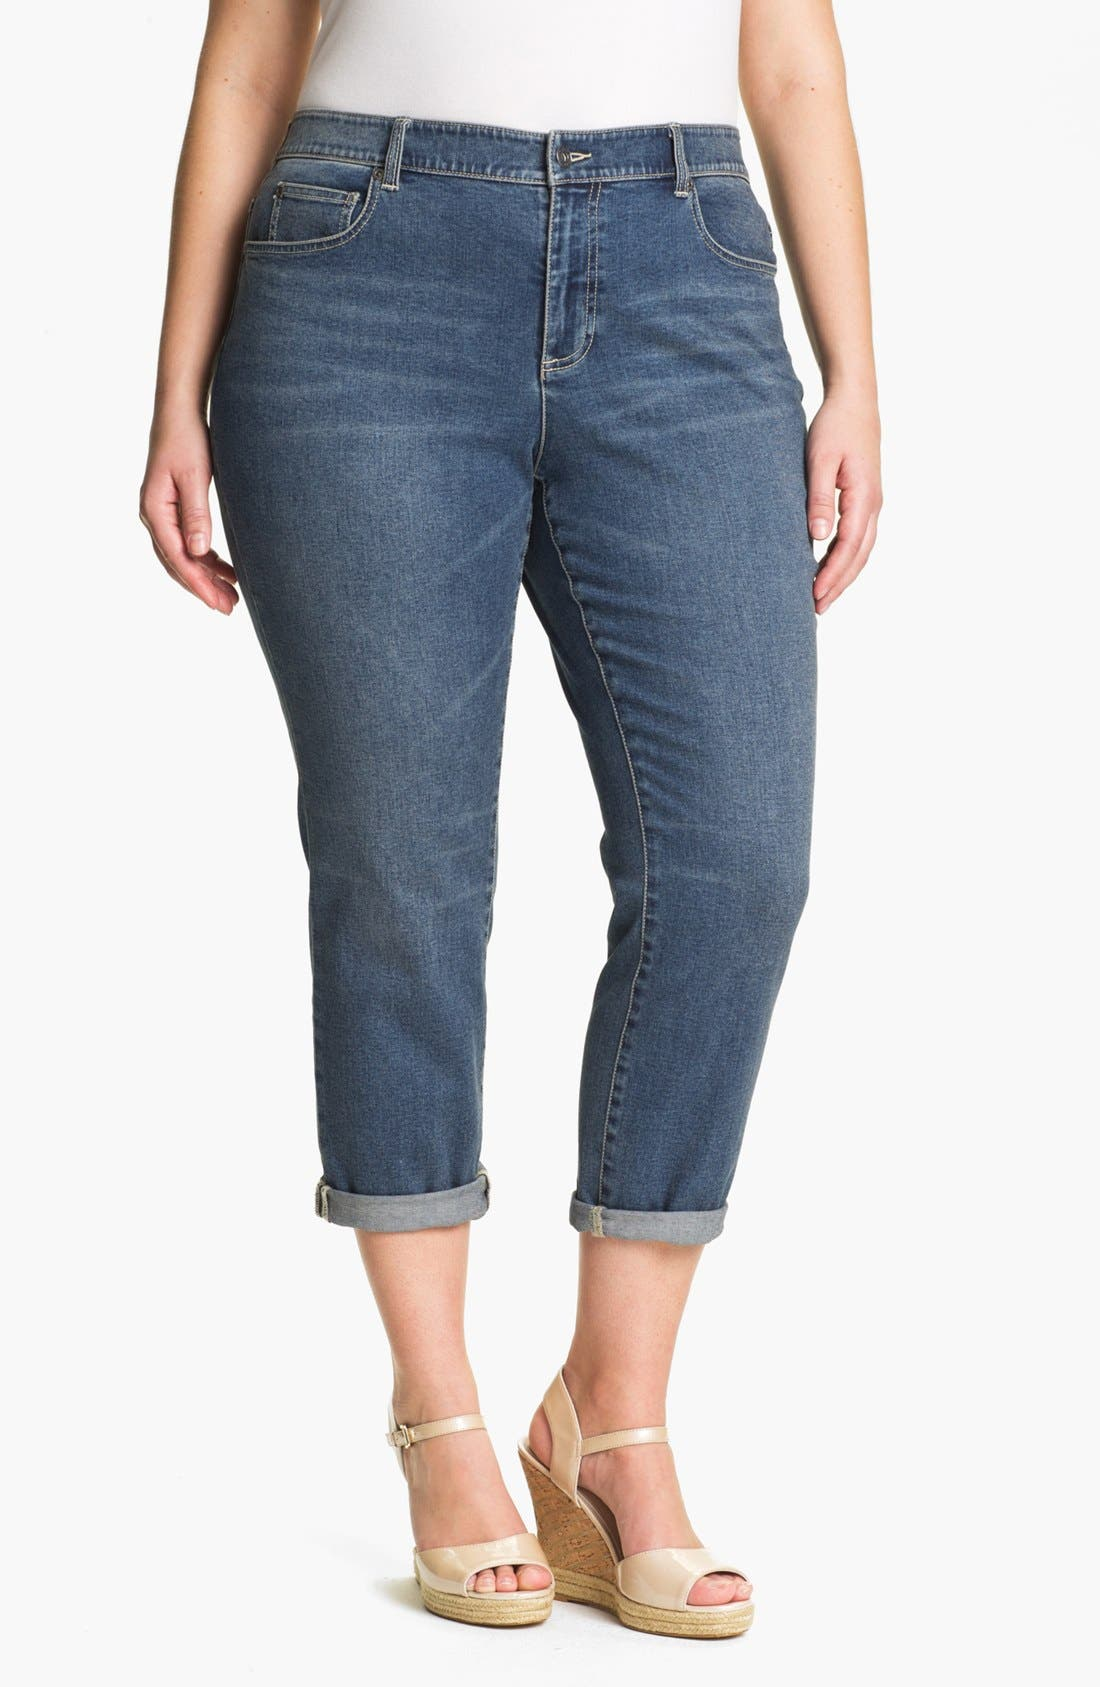 Alternate Image 1 Selected - Two by Vince Camuto Cuffed Boyfriend Jeans (Plus Size)